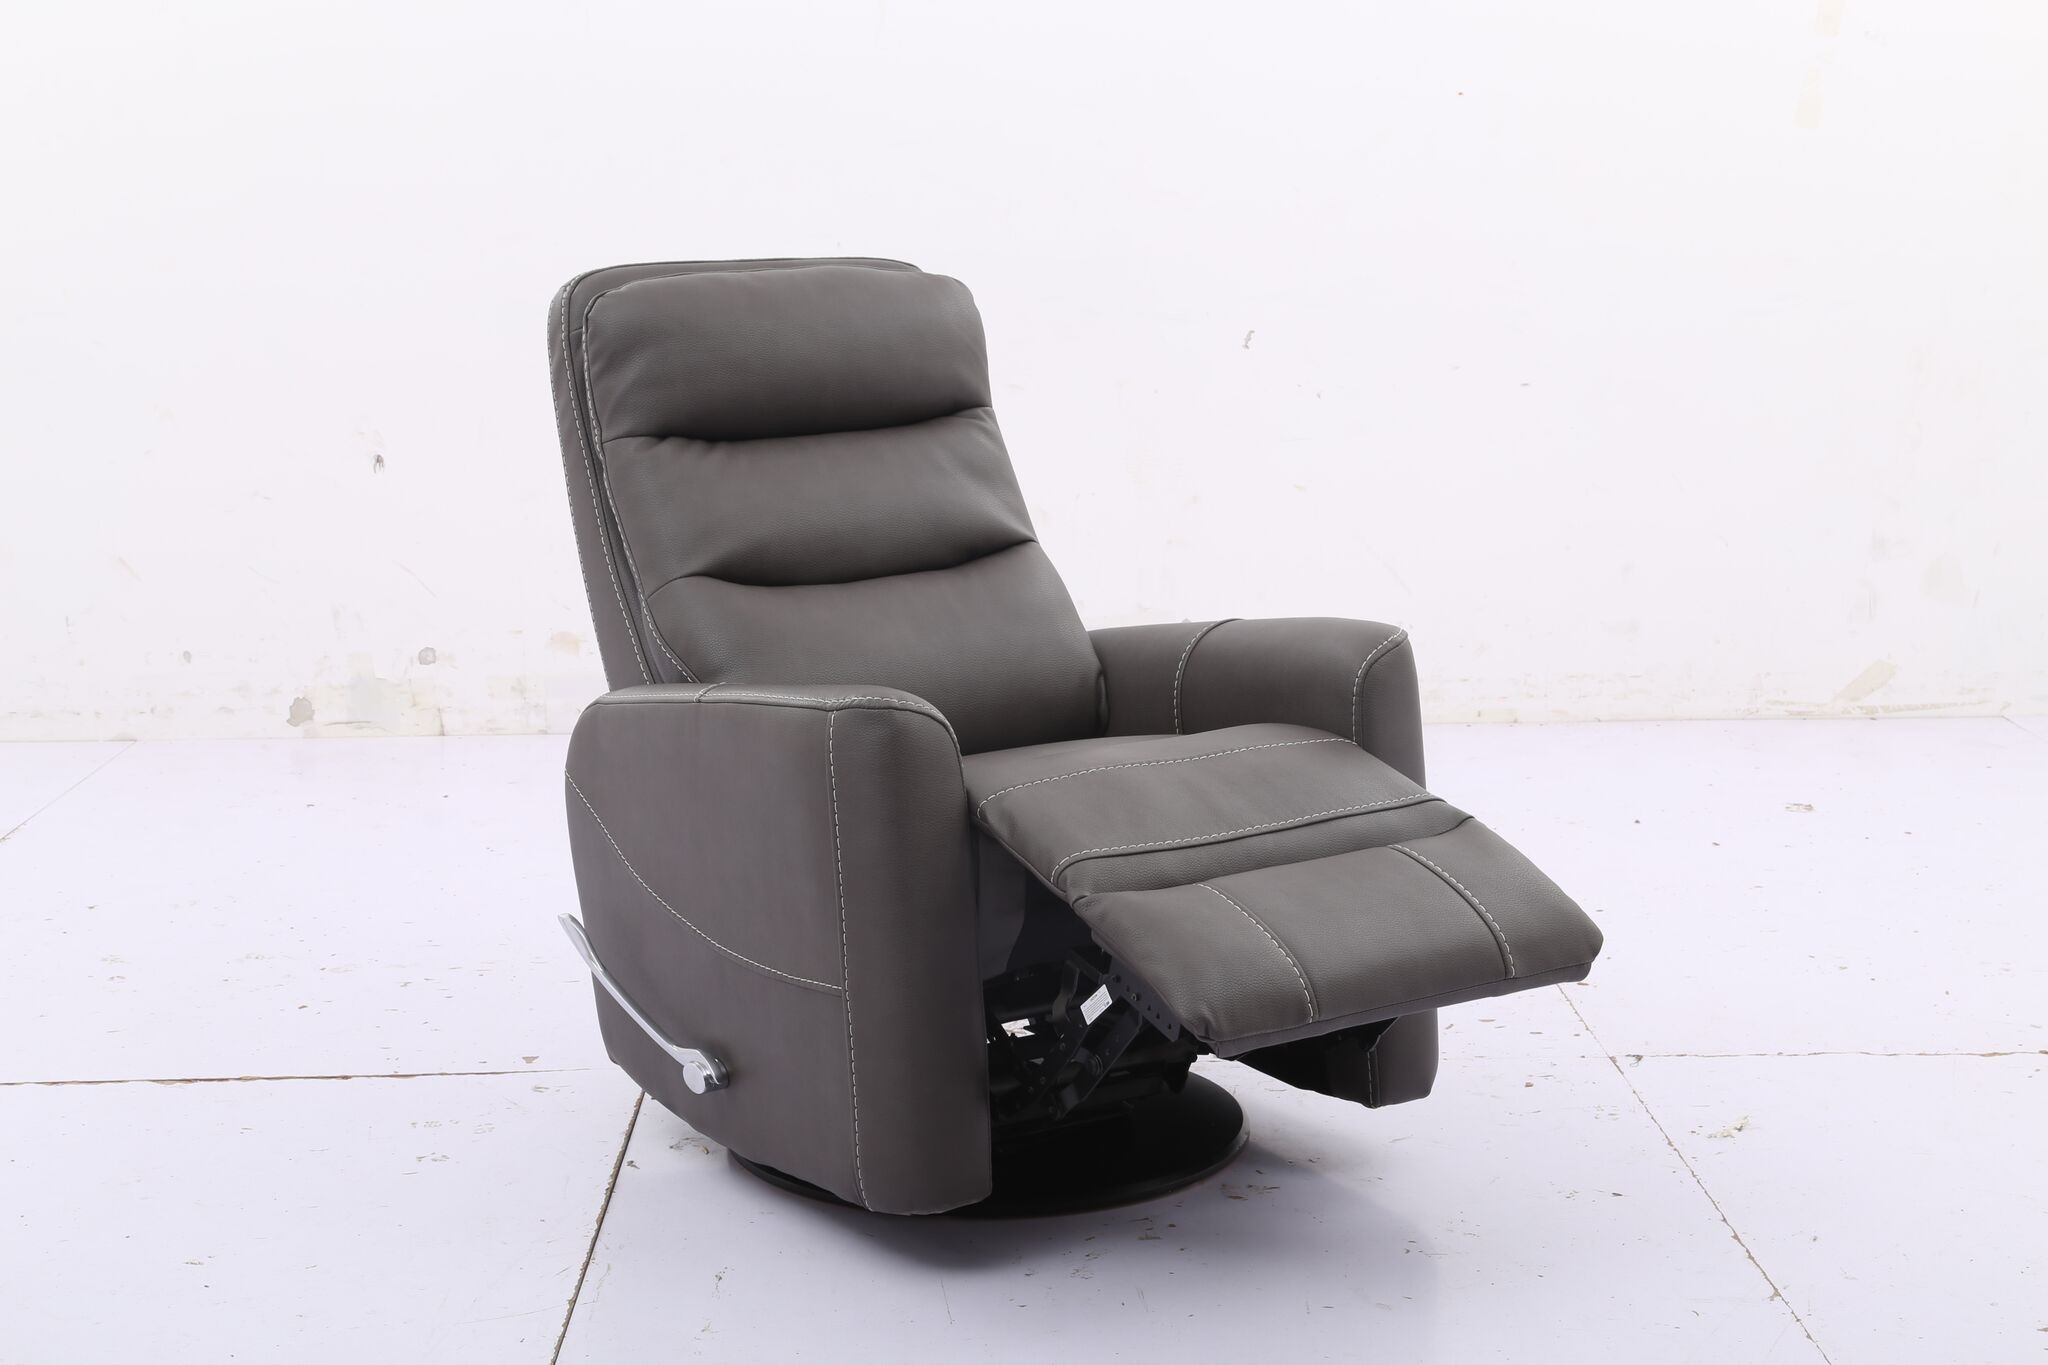 Hercules -Haze- Swivel Glider Recliner With Articulating Headrest with regard to Hercules Oyster Swivel Glider Recliners